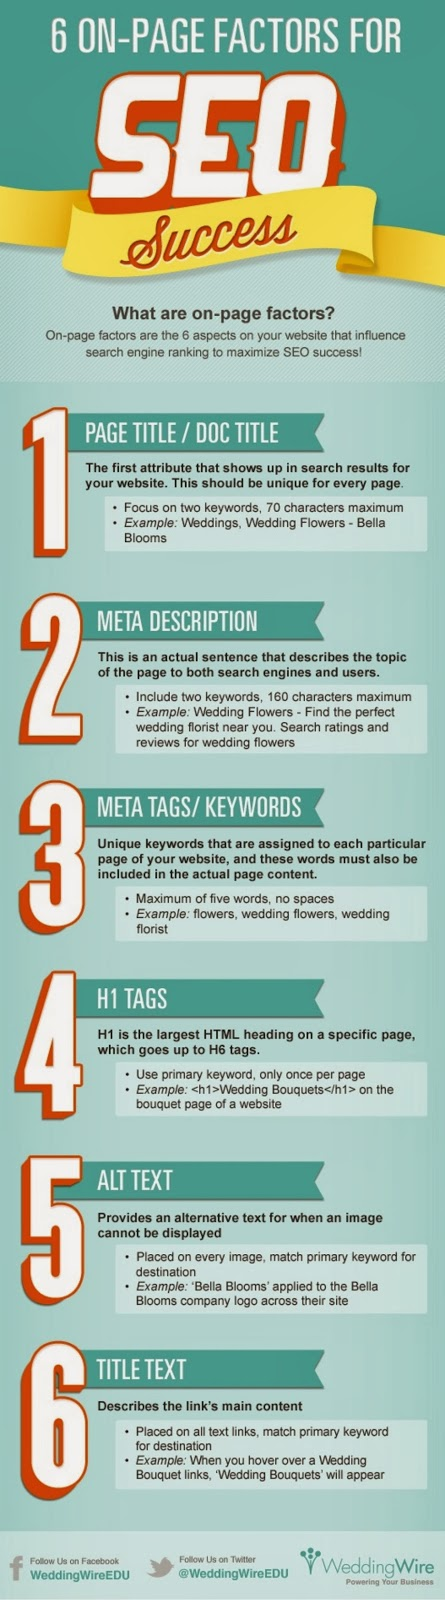 6 facteurs SEO on-page